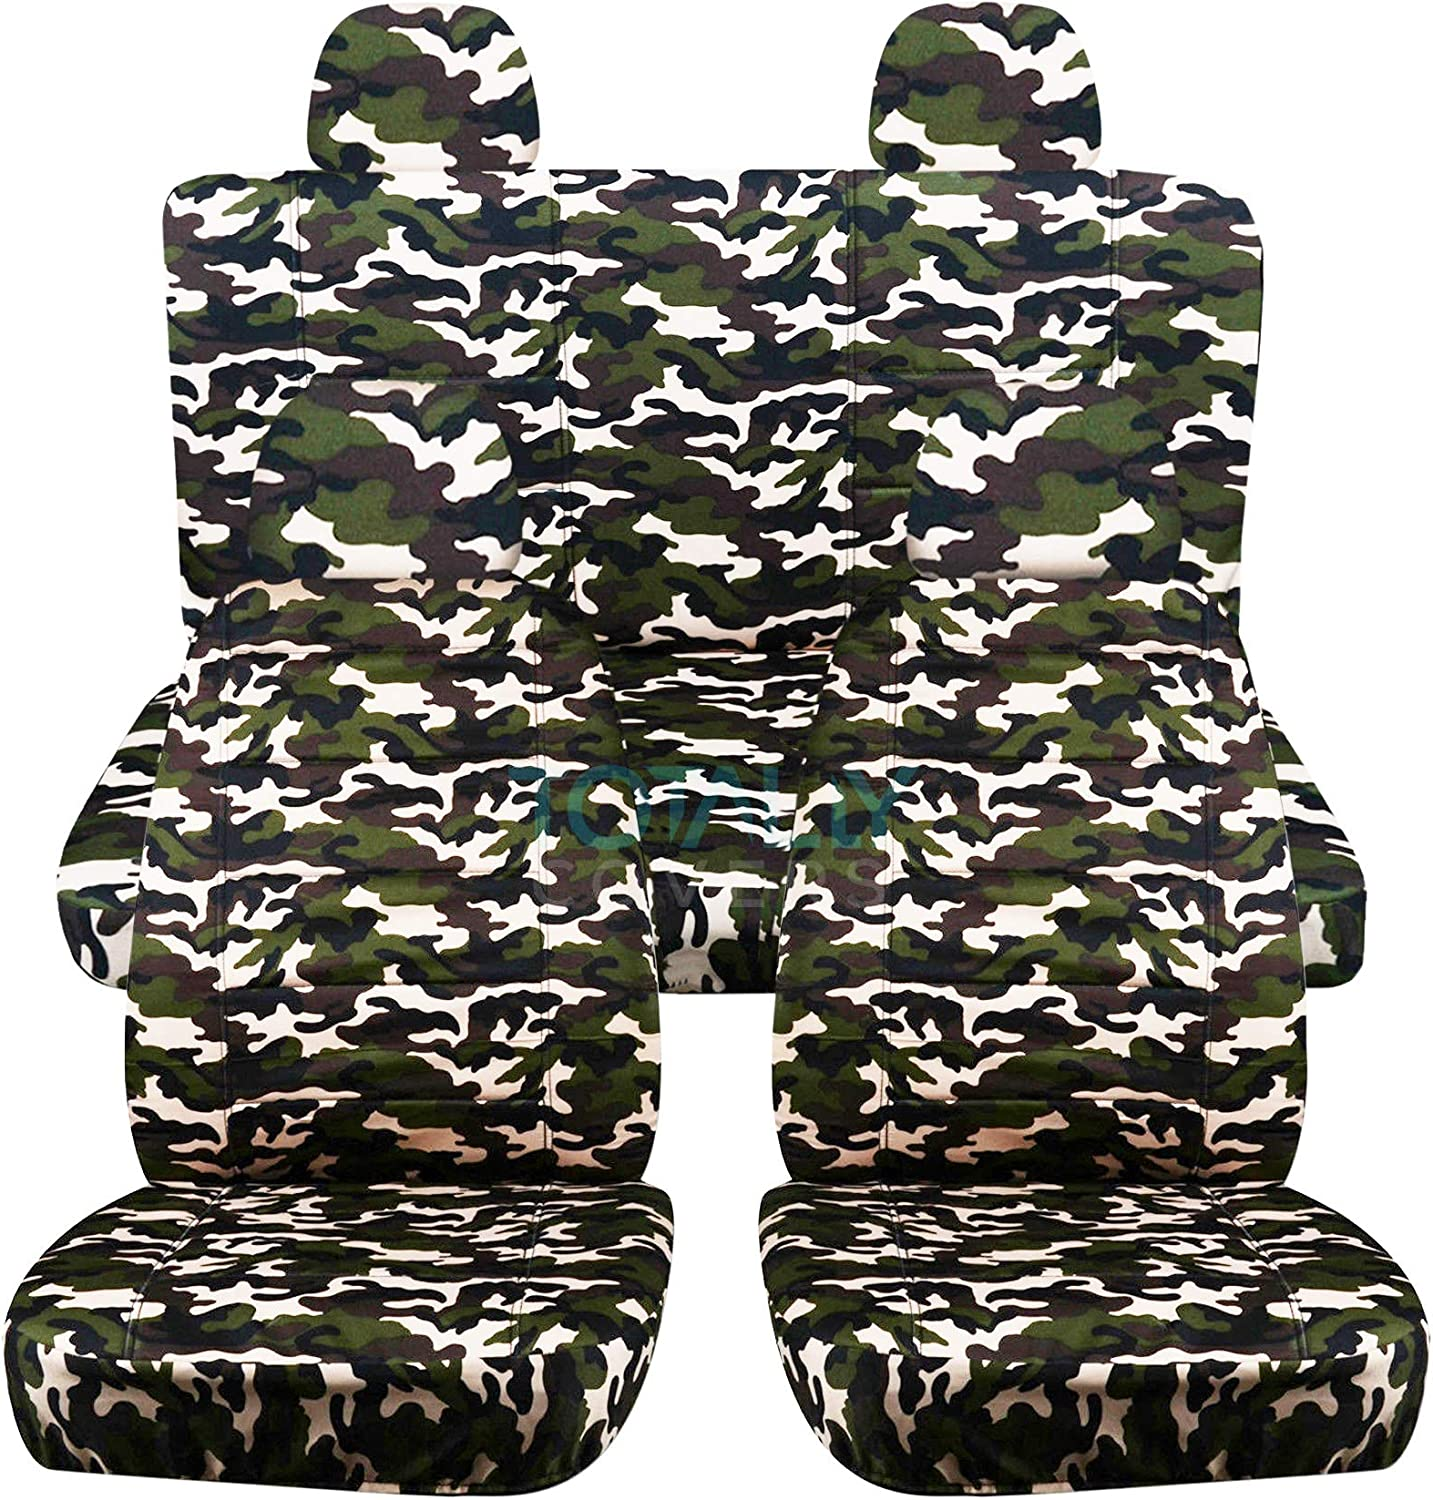 Totally Covers Camouflage Car Seat Covers w 4 Semi-Custom Fit Headrest Covers: Blue Camo 22 Prints Will Make Fit Any Car//Truck//Van//RV//SUV 2 Front + 2 Rear Full Set